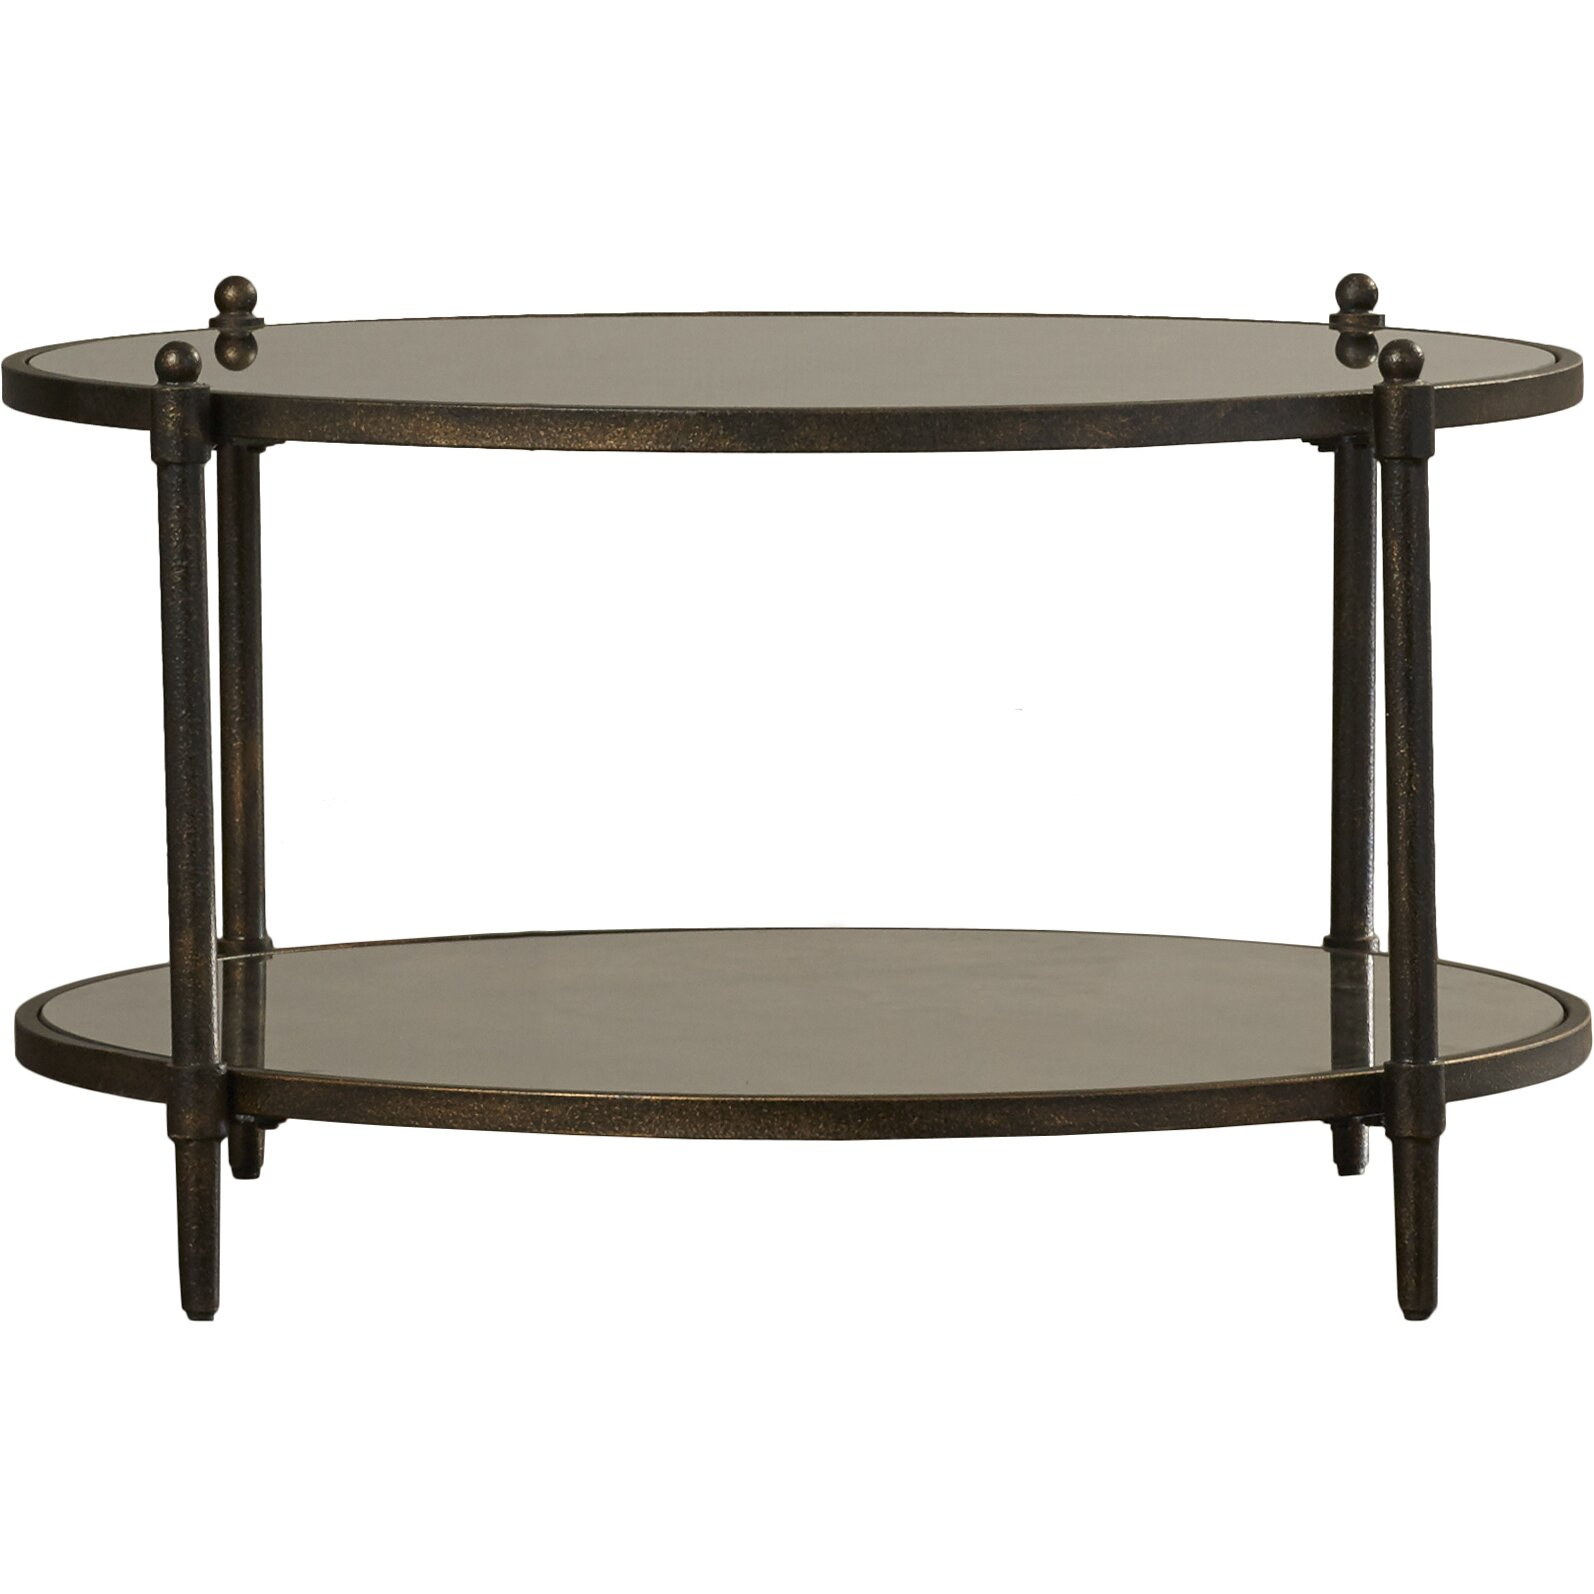 Darby home co coffee table wayfair for Wayfair outdoor coffee table